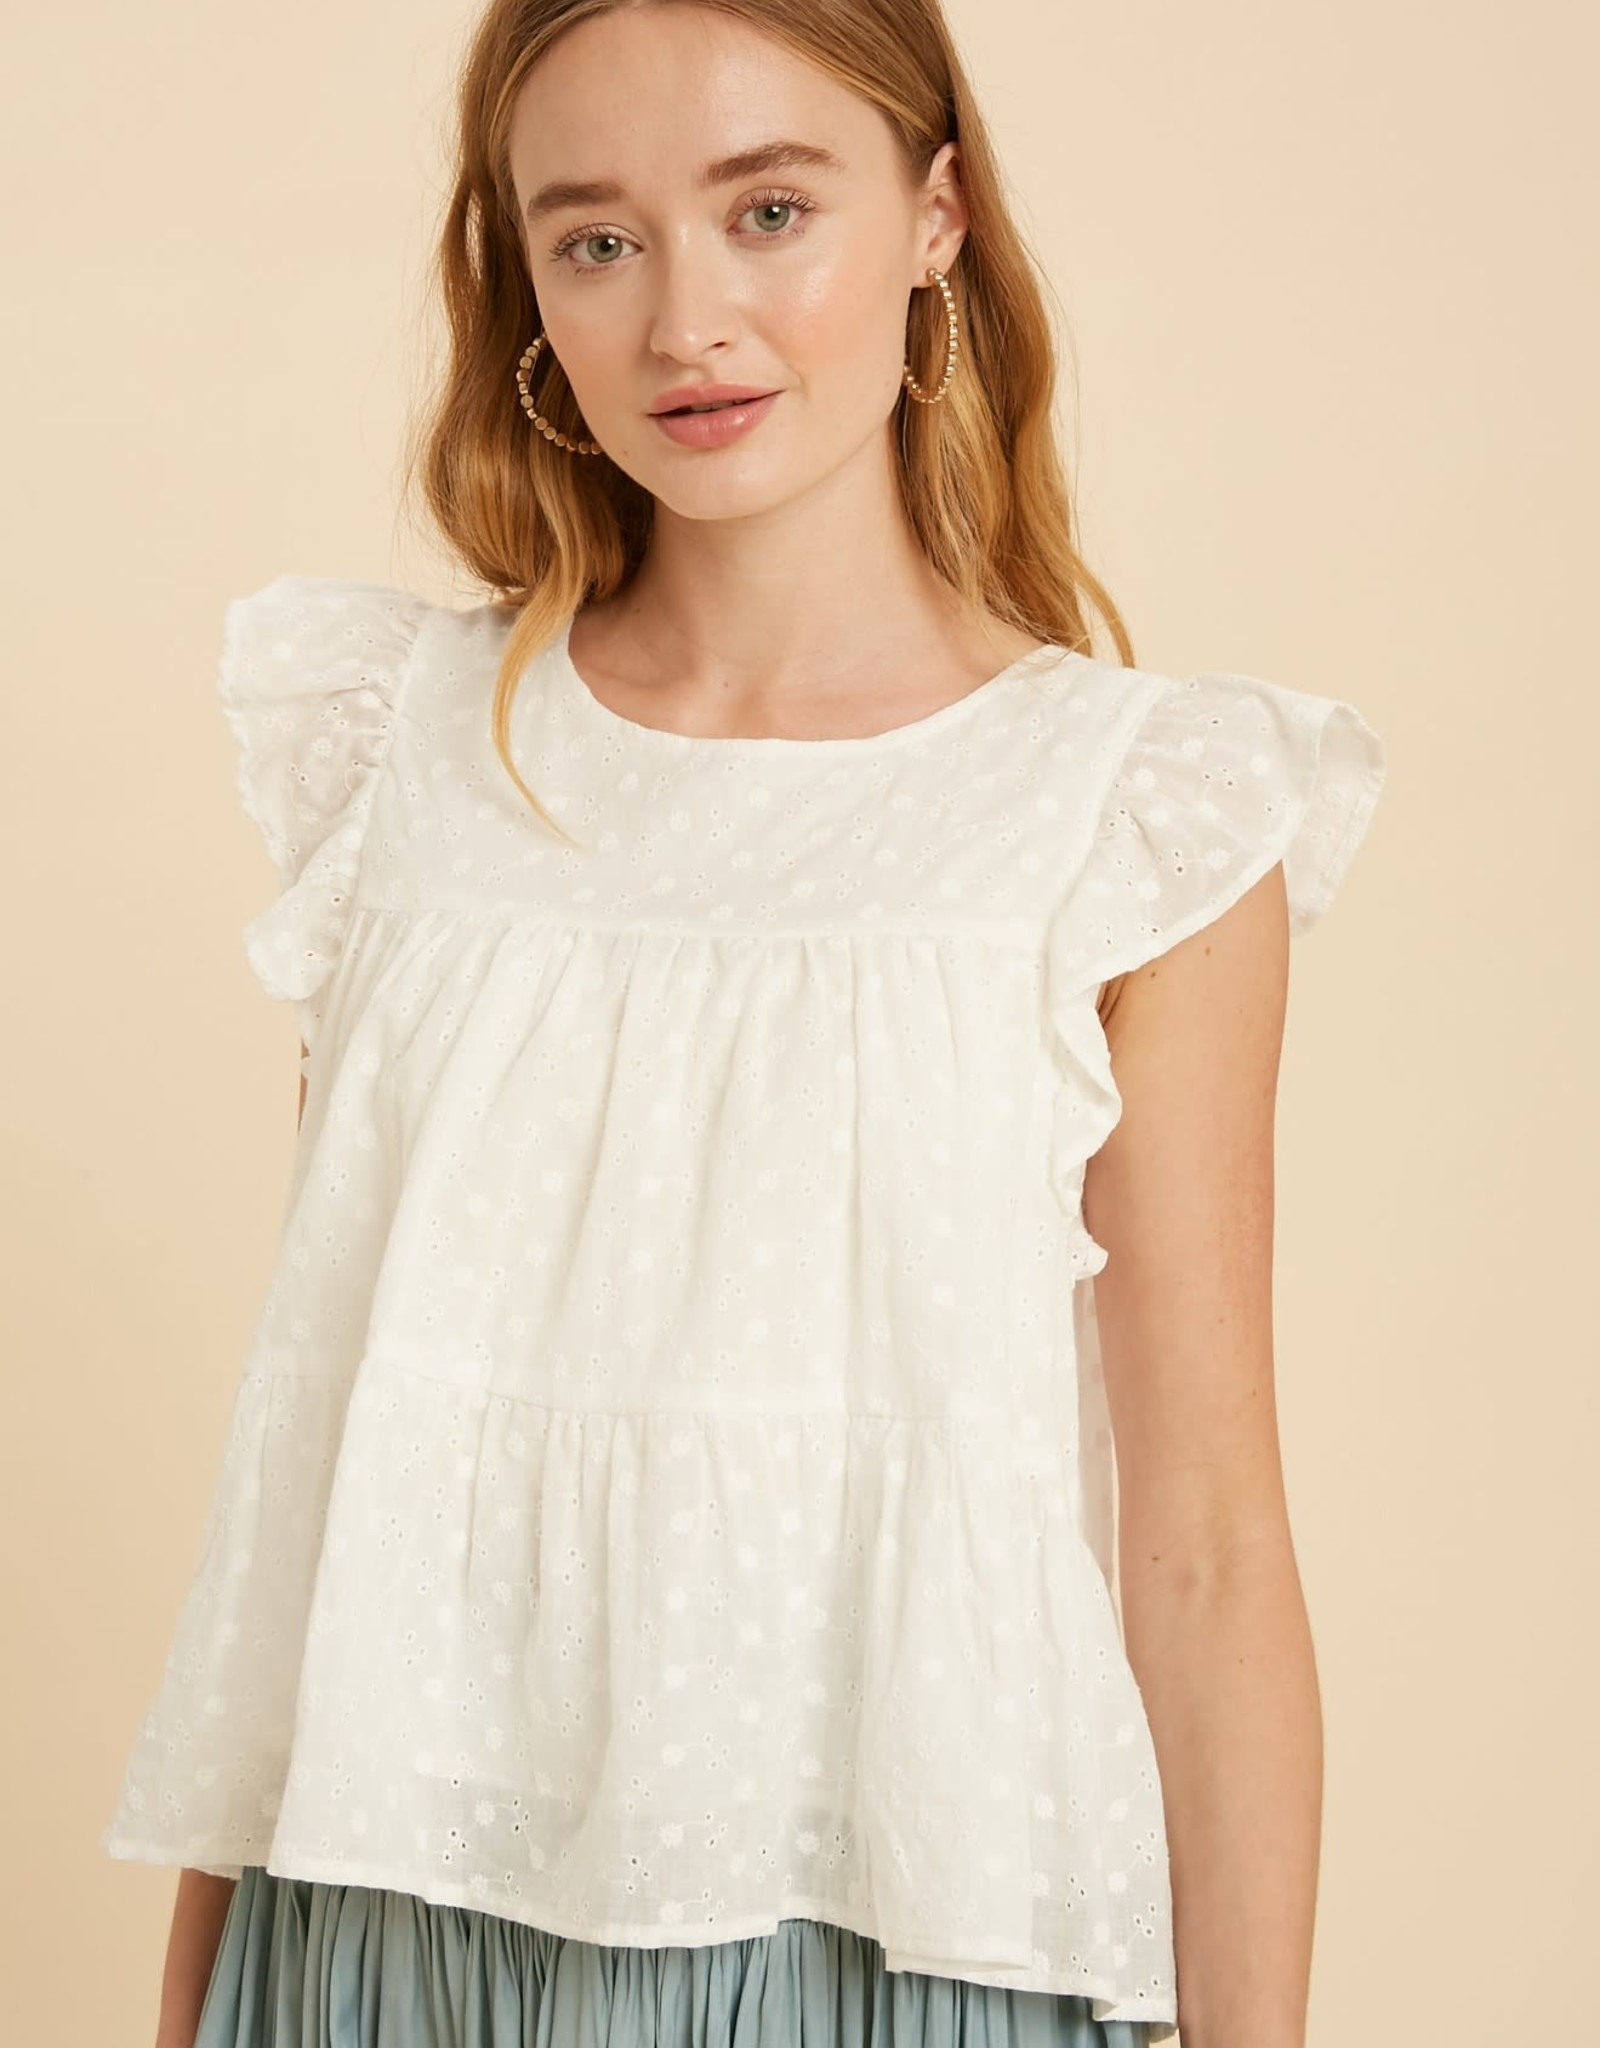 Miss Bliss Tiered Baby Doll Eyelet Top- Off White